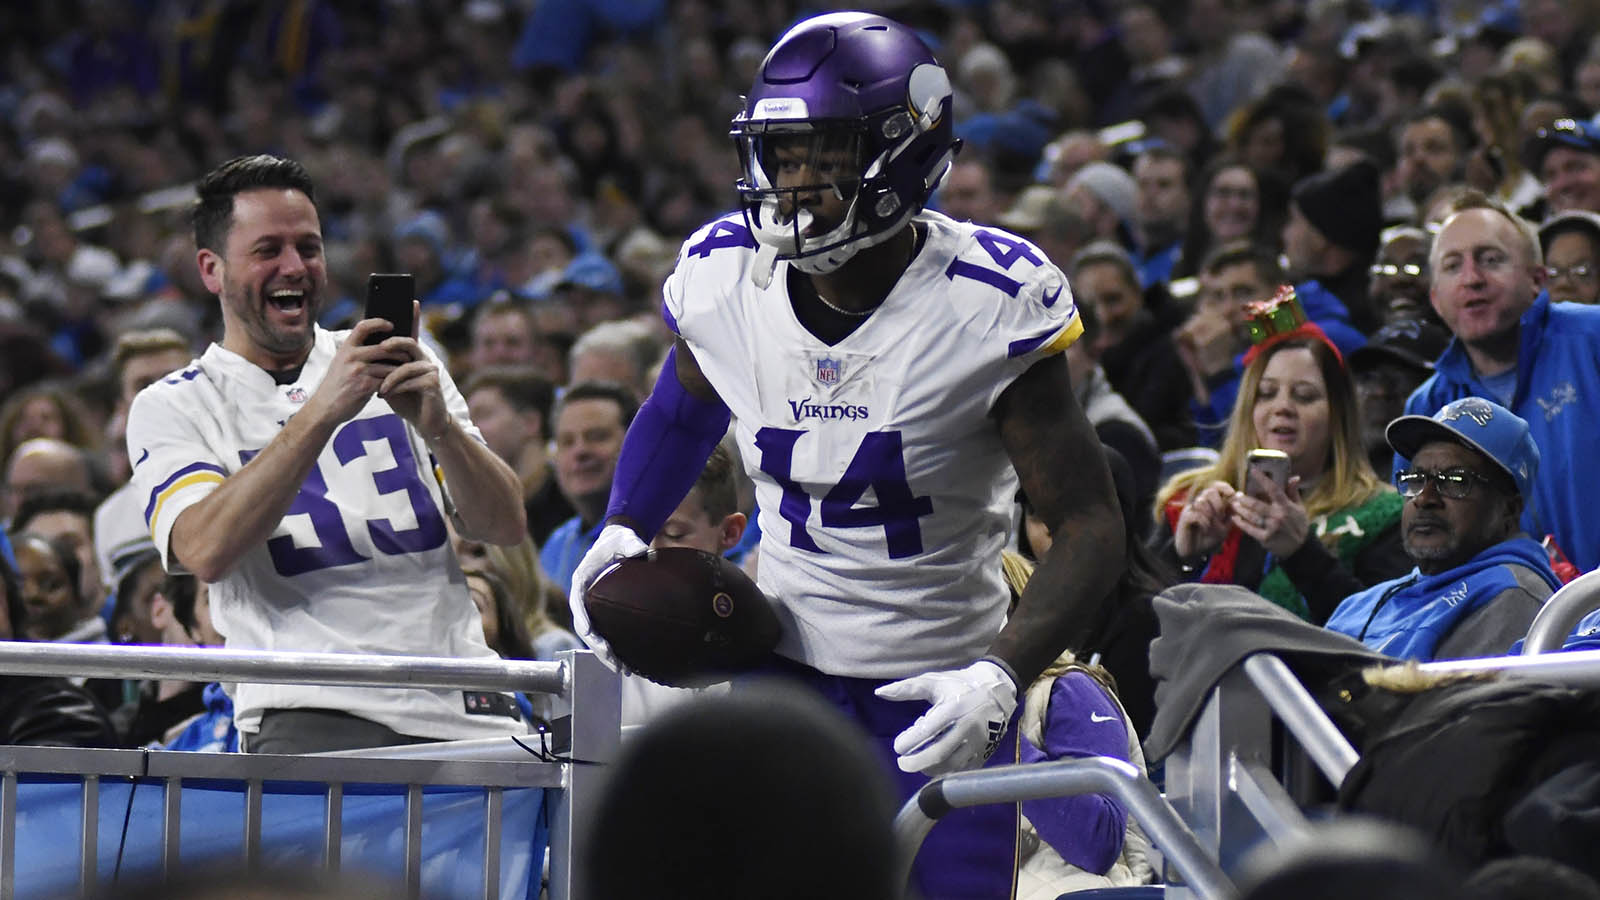 Minnesota Vikings wide receiver Stefon Diggs (14) leaves the stands after scoring a touchdown during the first half of an NFL football game against the Detroit Lions, Sunday, Dec. 23, 2018, in Detroit. (AP Photo/Jose Juarez)